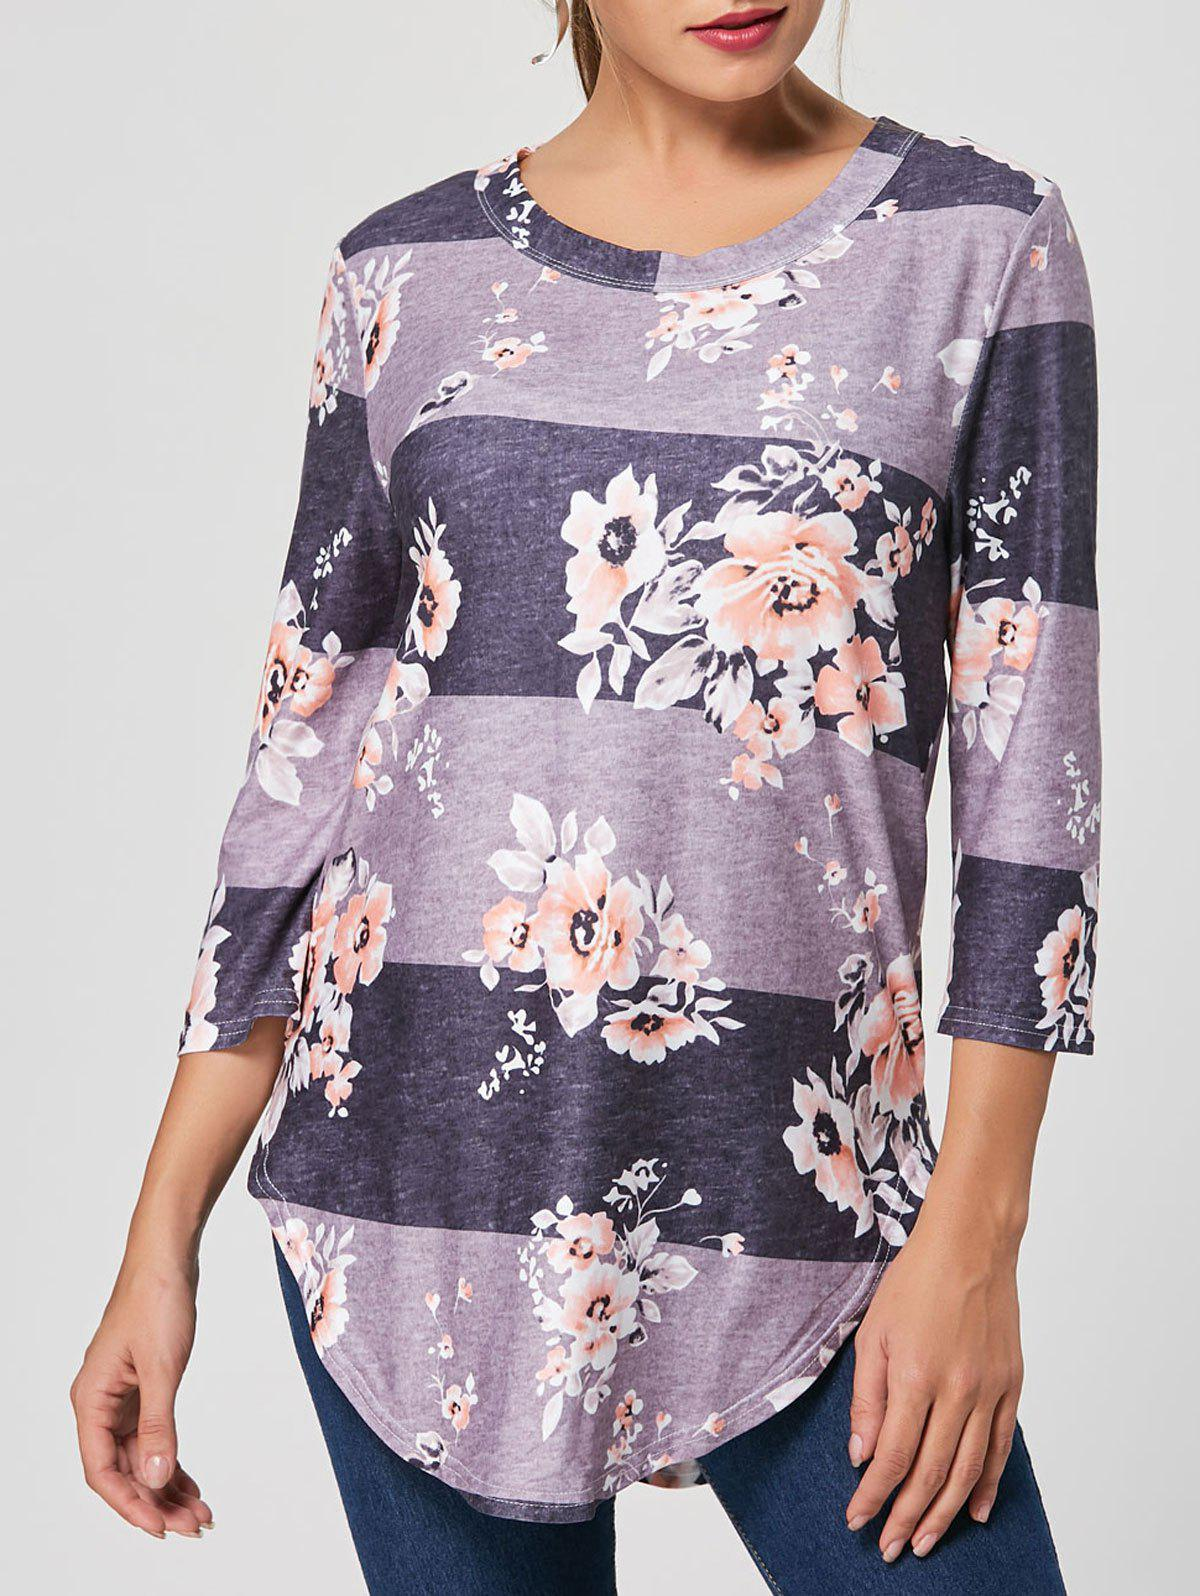 Floral Striped Print Casual Long Tee - GRAY L